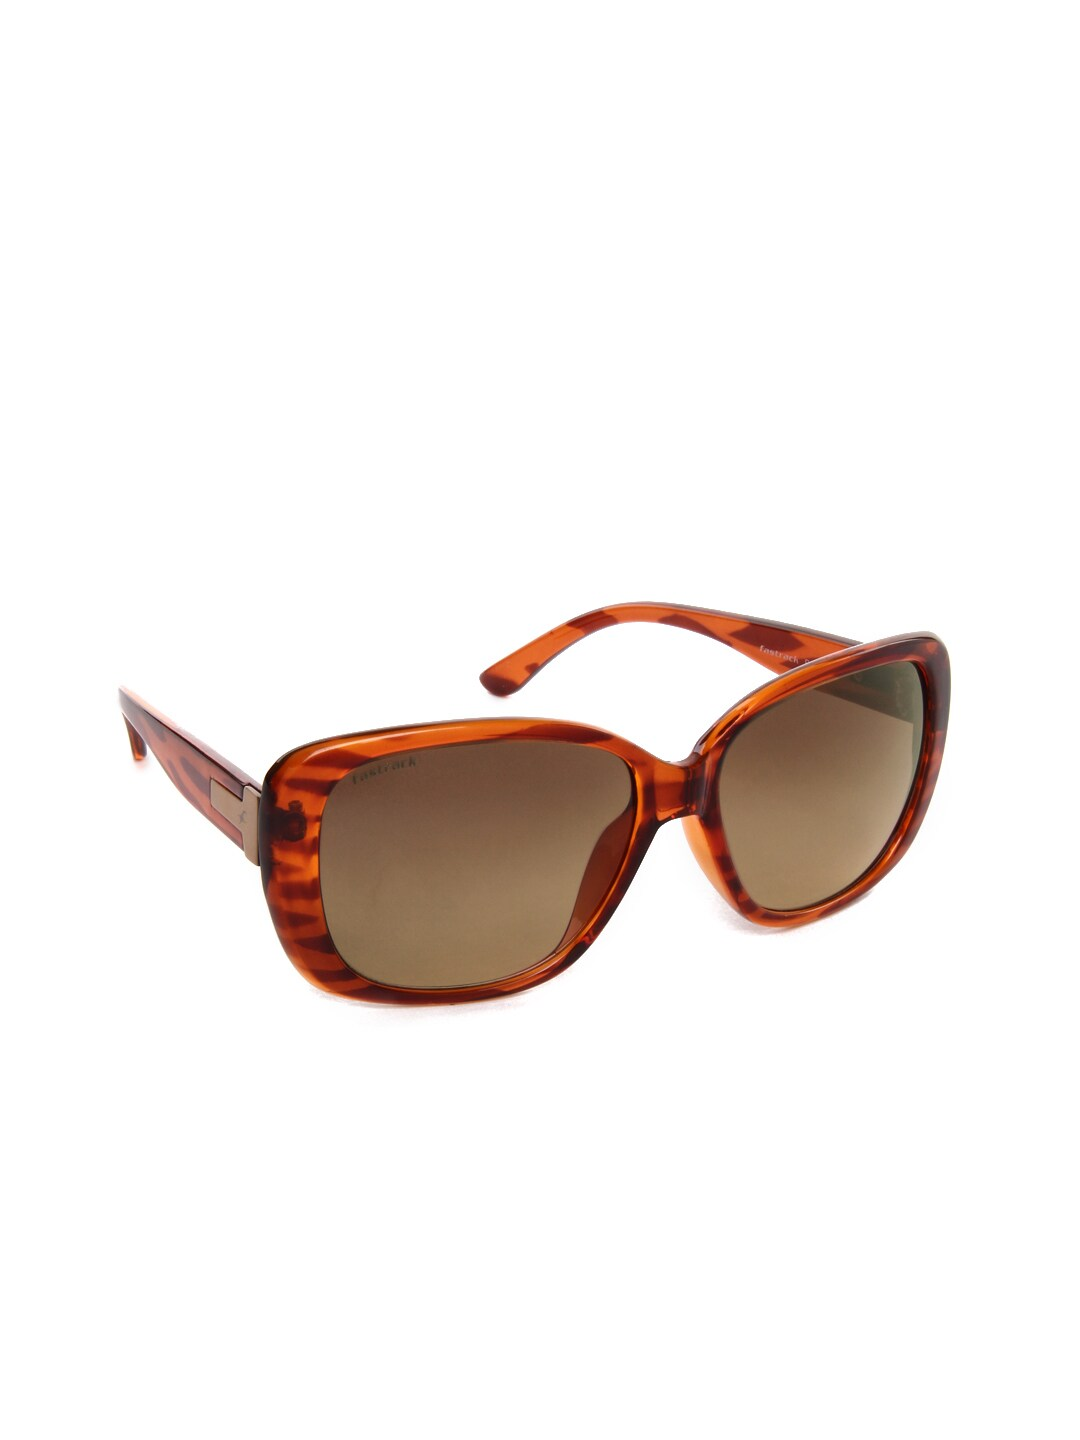 4d972c6d875 Fastrack Women Sunglasses Price List in India 31 March 2019 ...